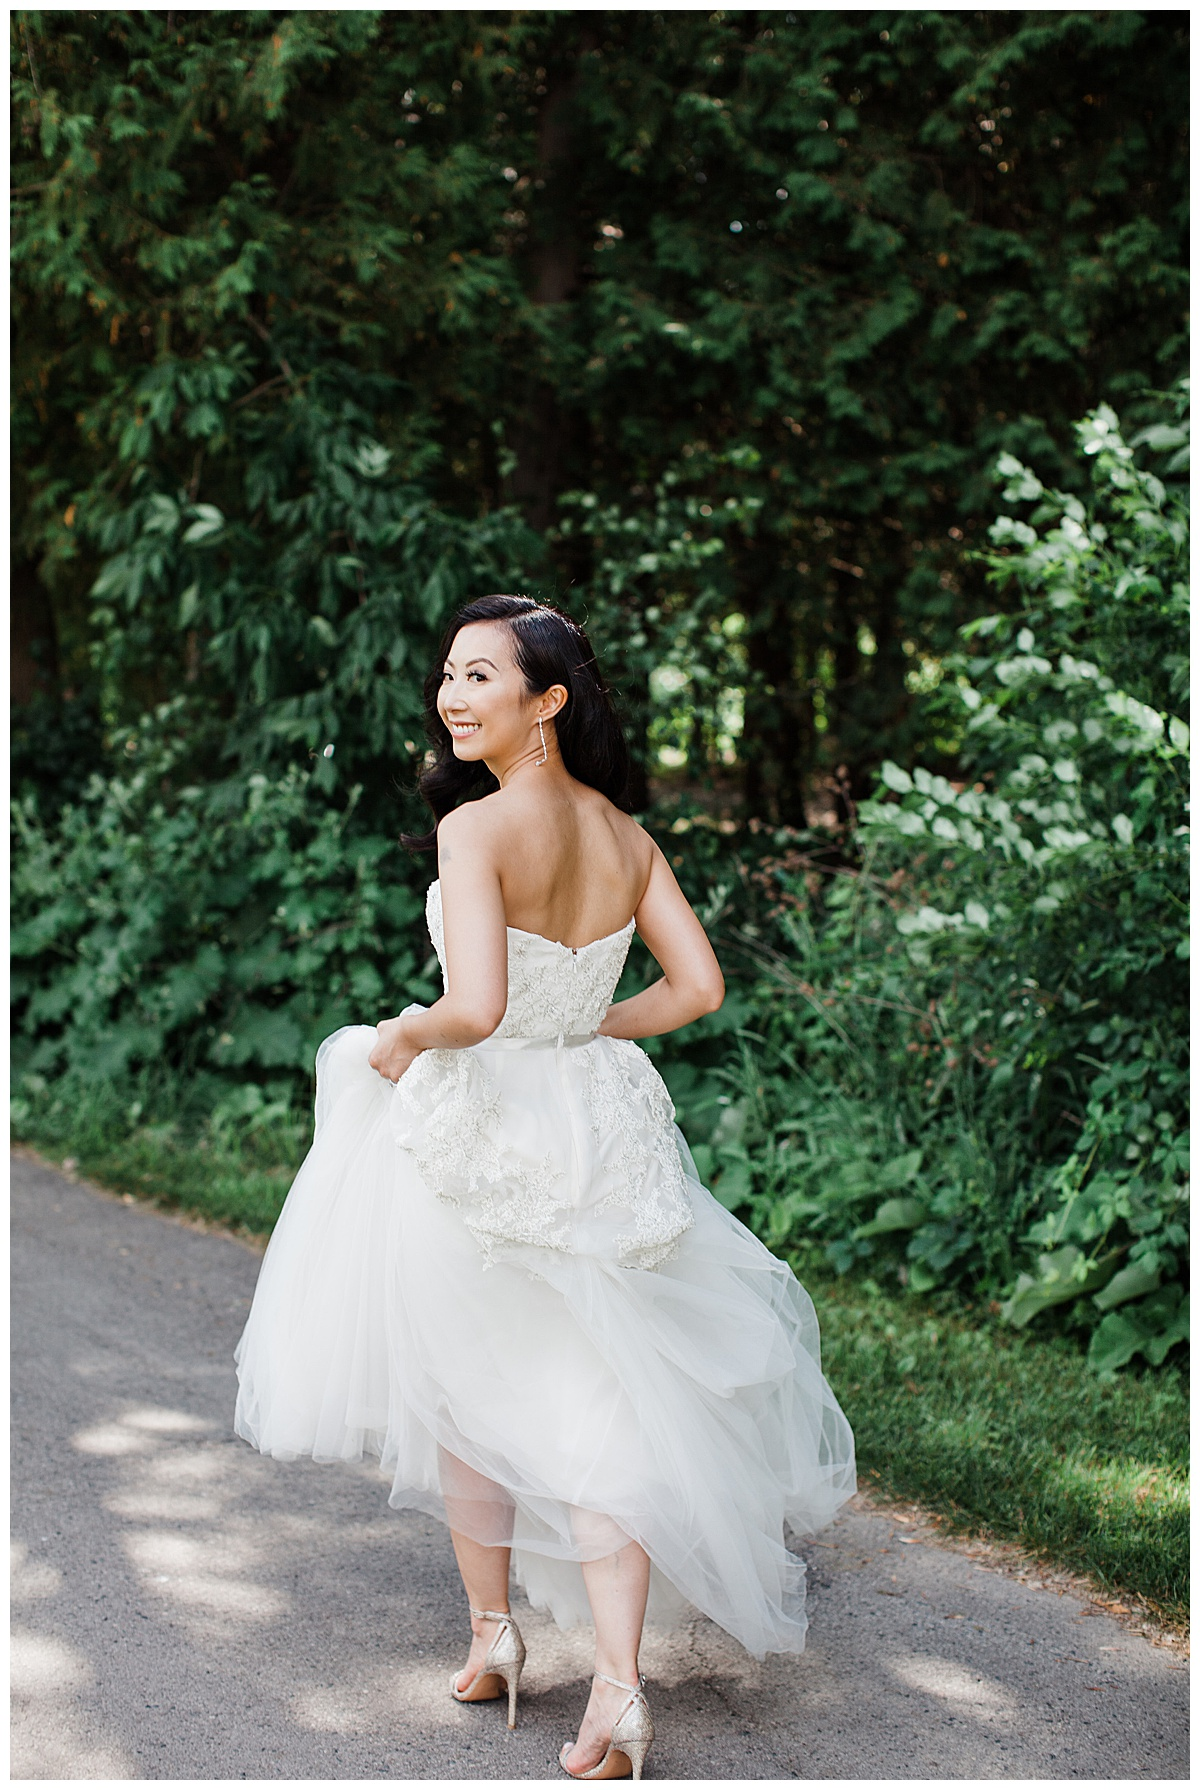 Bride holding dress up while walking and looking over her shoulder outside| outdoor bridal portrait| outdoor wedding| winery wedding| Toronto photographer| 3photography